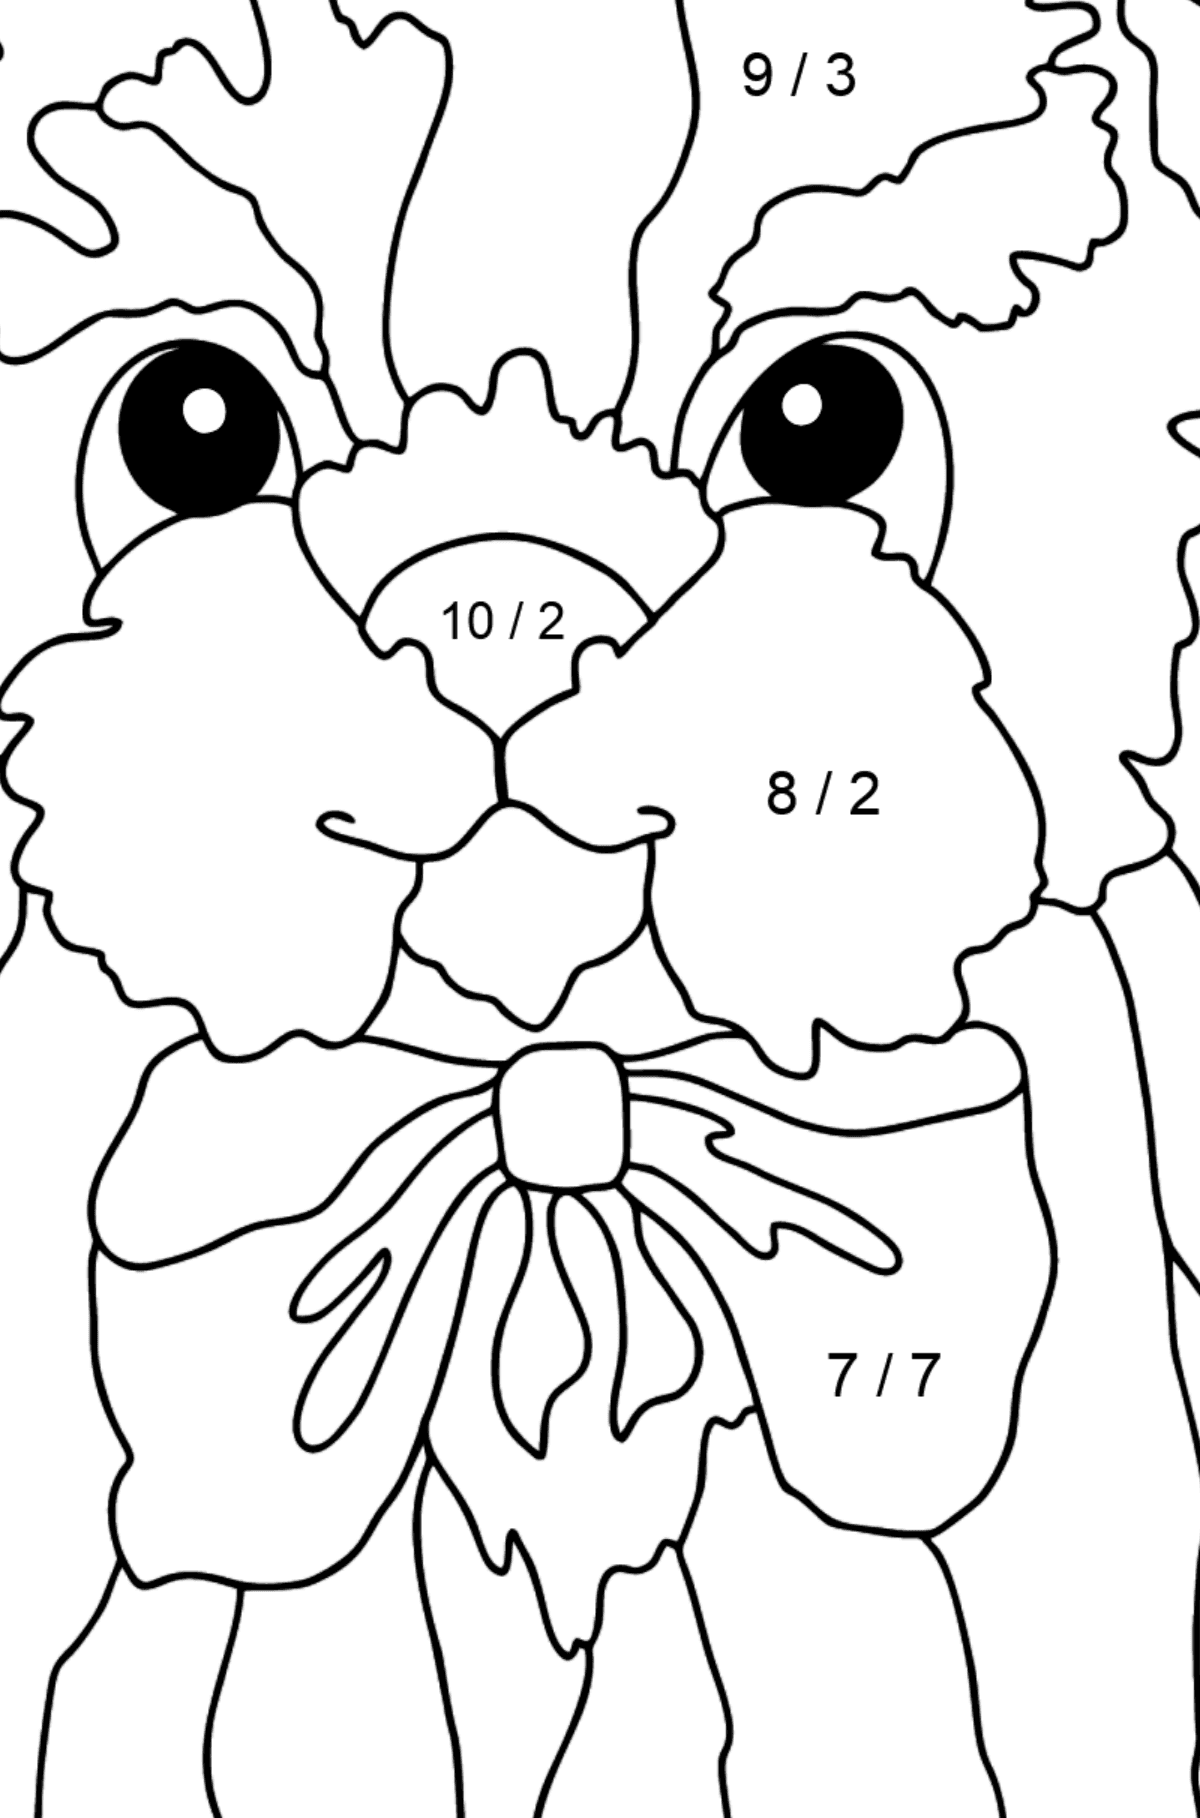 Coloring Page - A Young Fluffy Dog - Math Coloring - Division for Kids